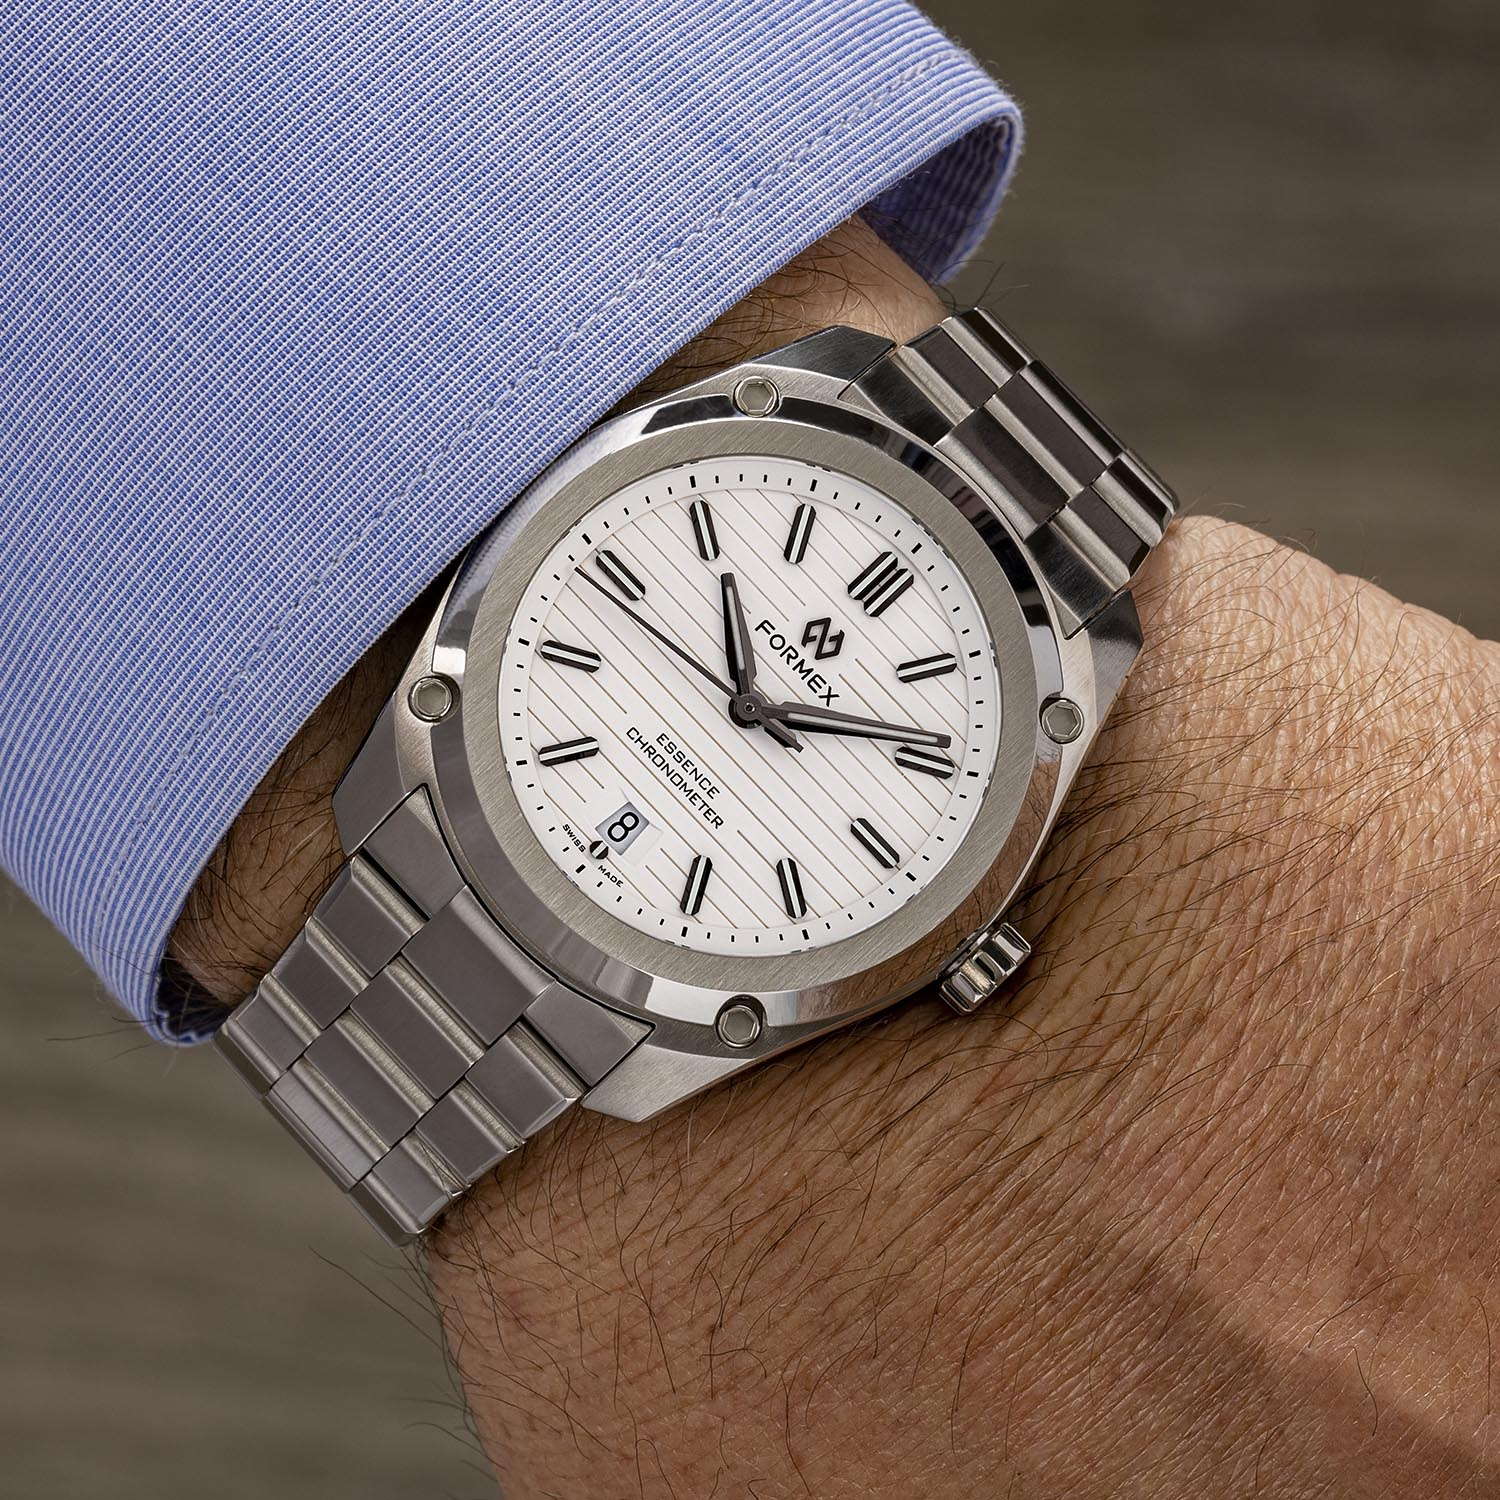 2021 Formex Essence ThirtyNine Automatic Chronometer white dial